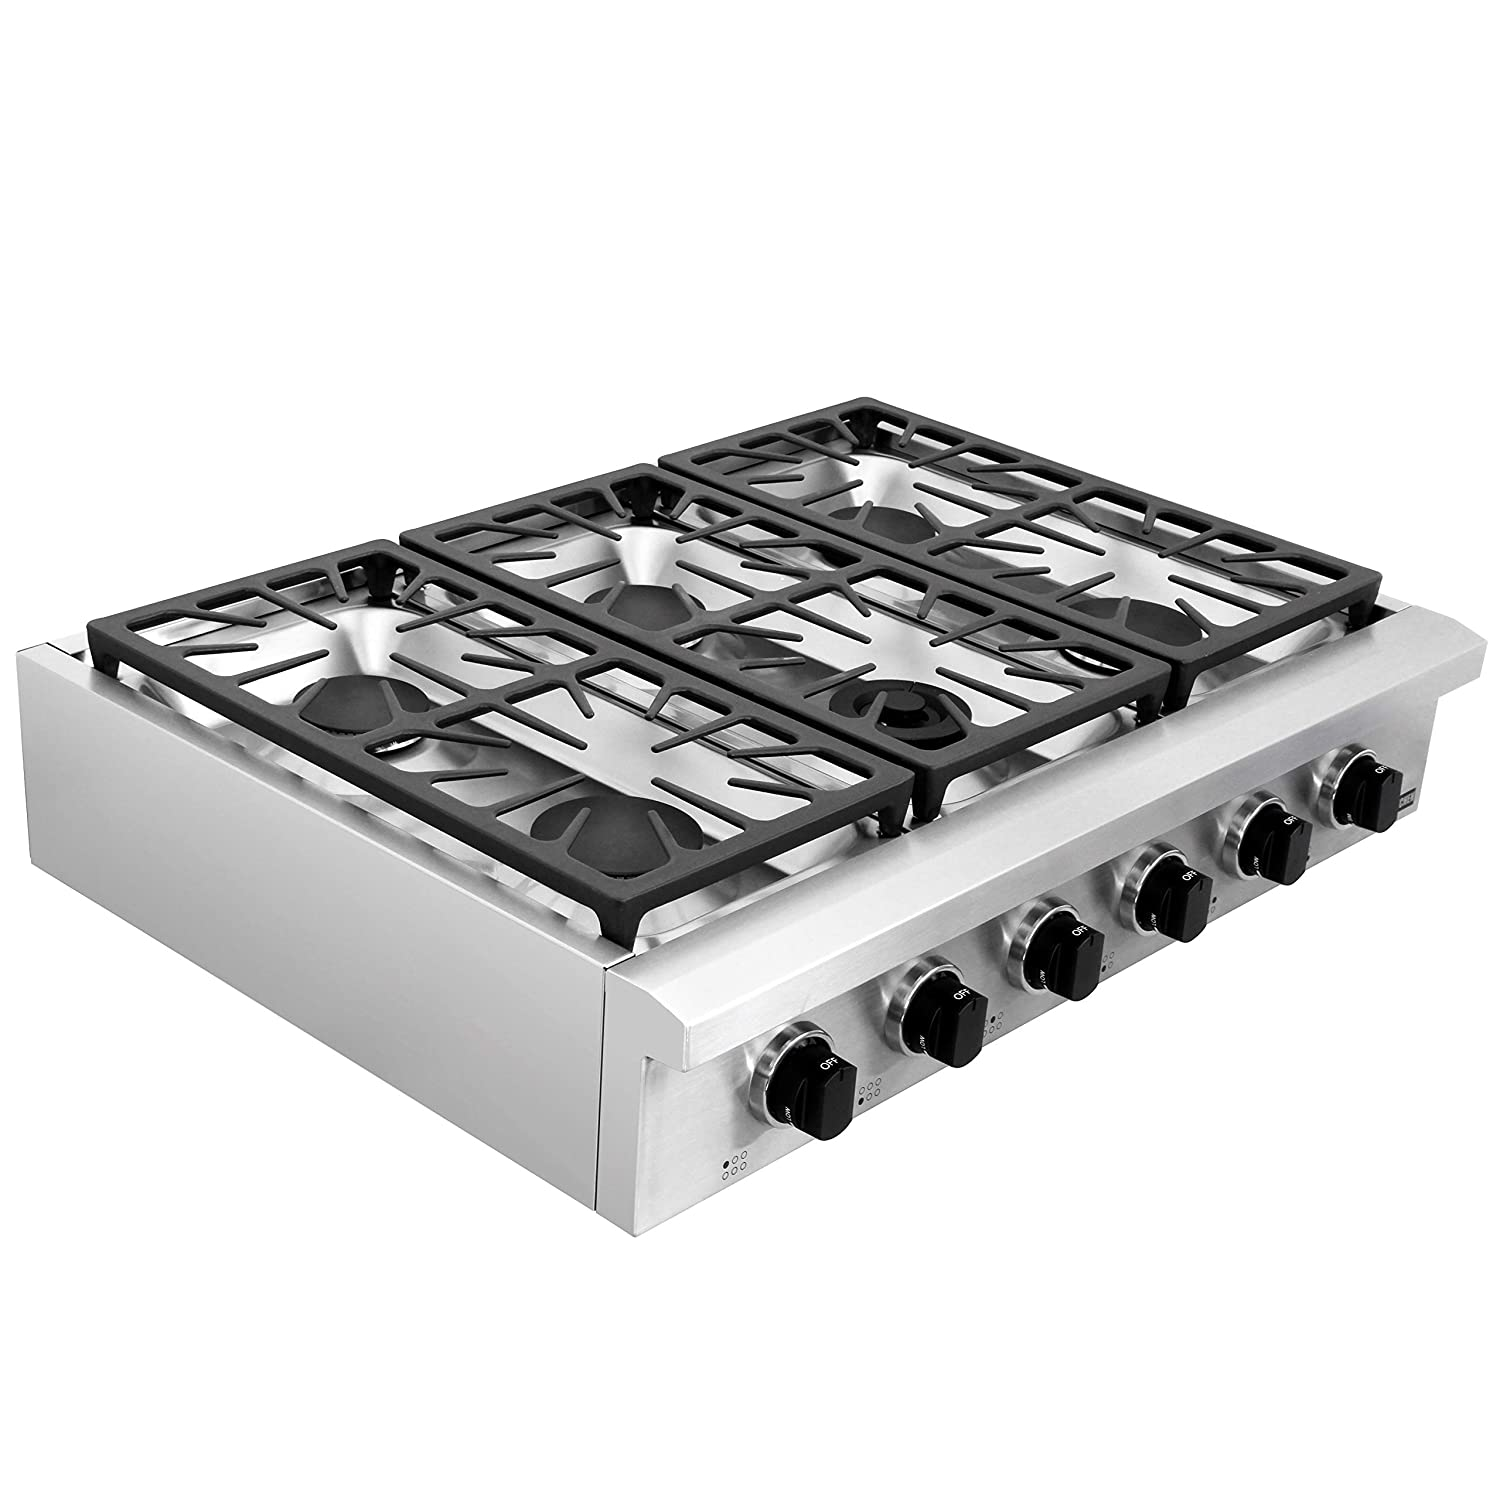 "SDADI Kitchen Gas Cooktop 36"" Stainless Steel Range top with 1 Dual Burner for Simmer NG/LPG (kit not included) convertible SDRT3601U"